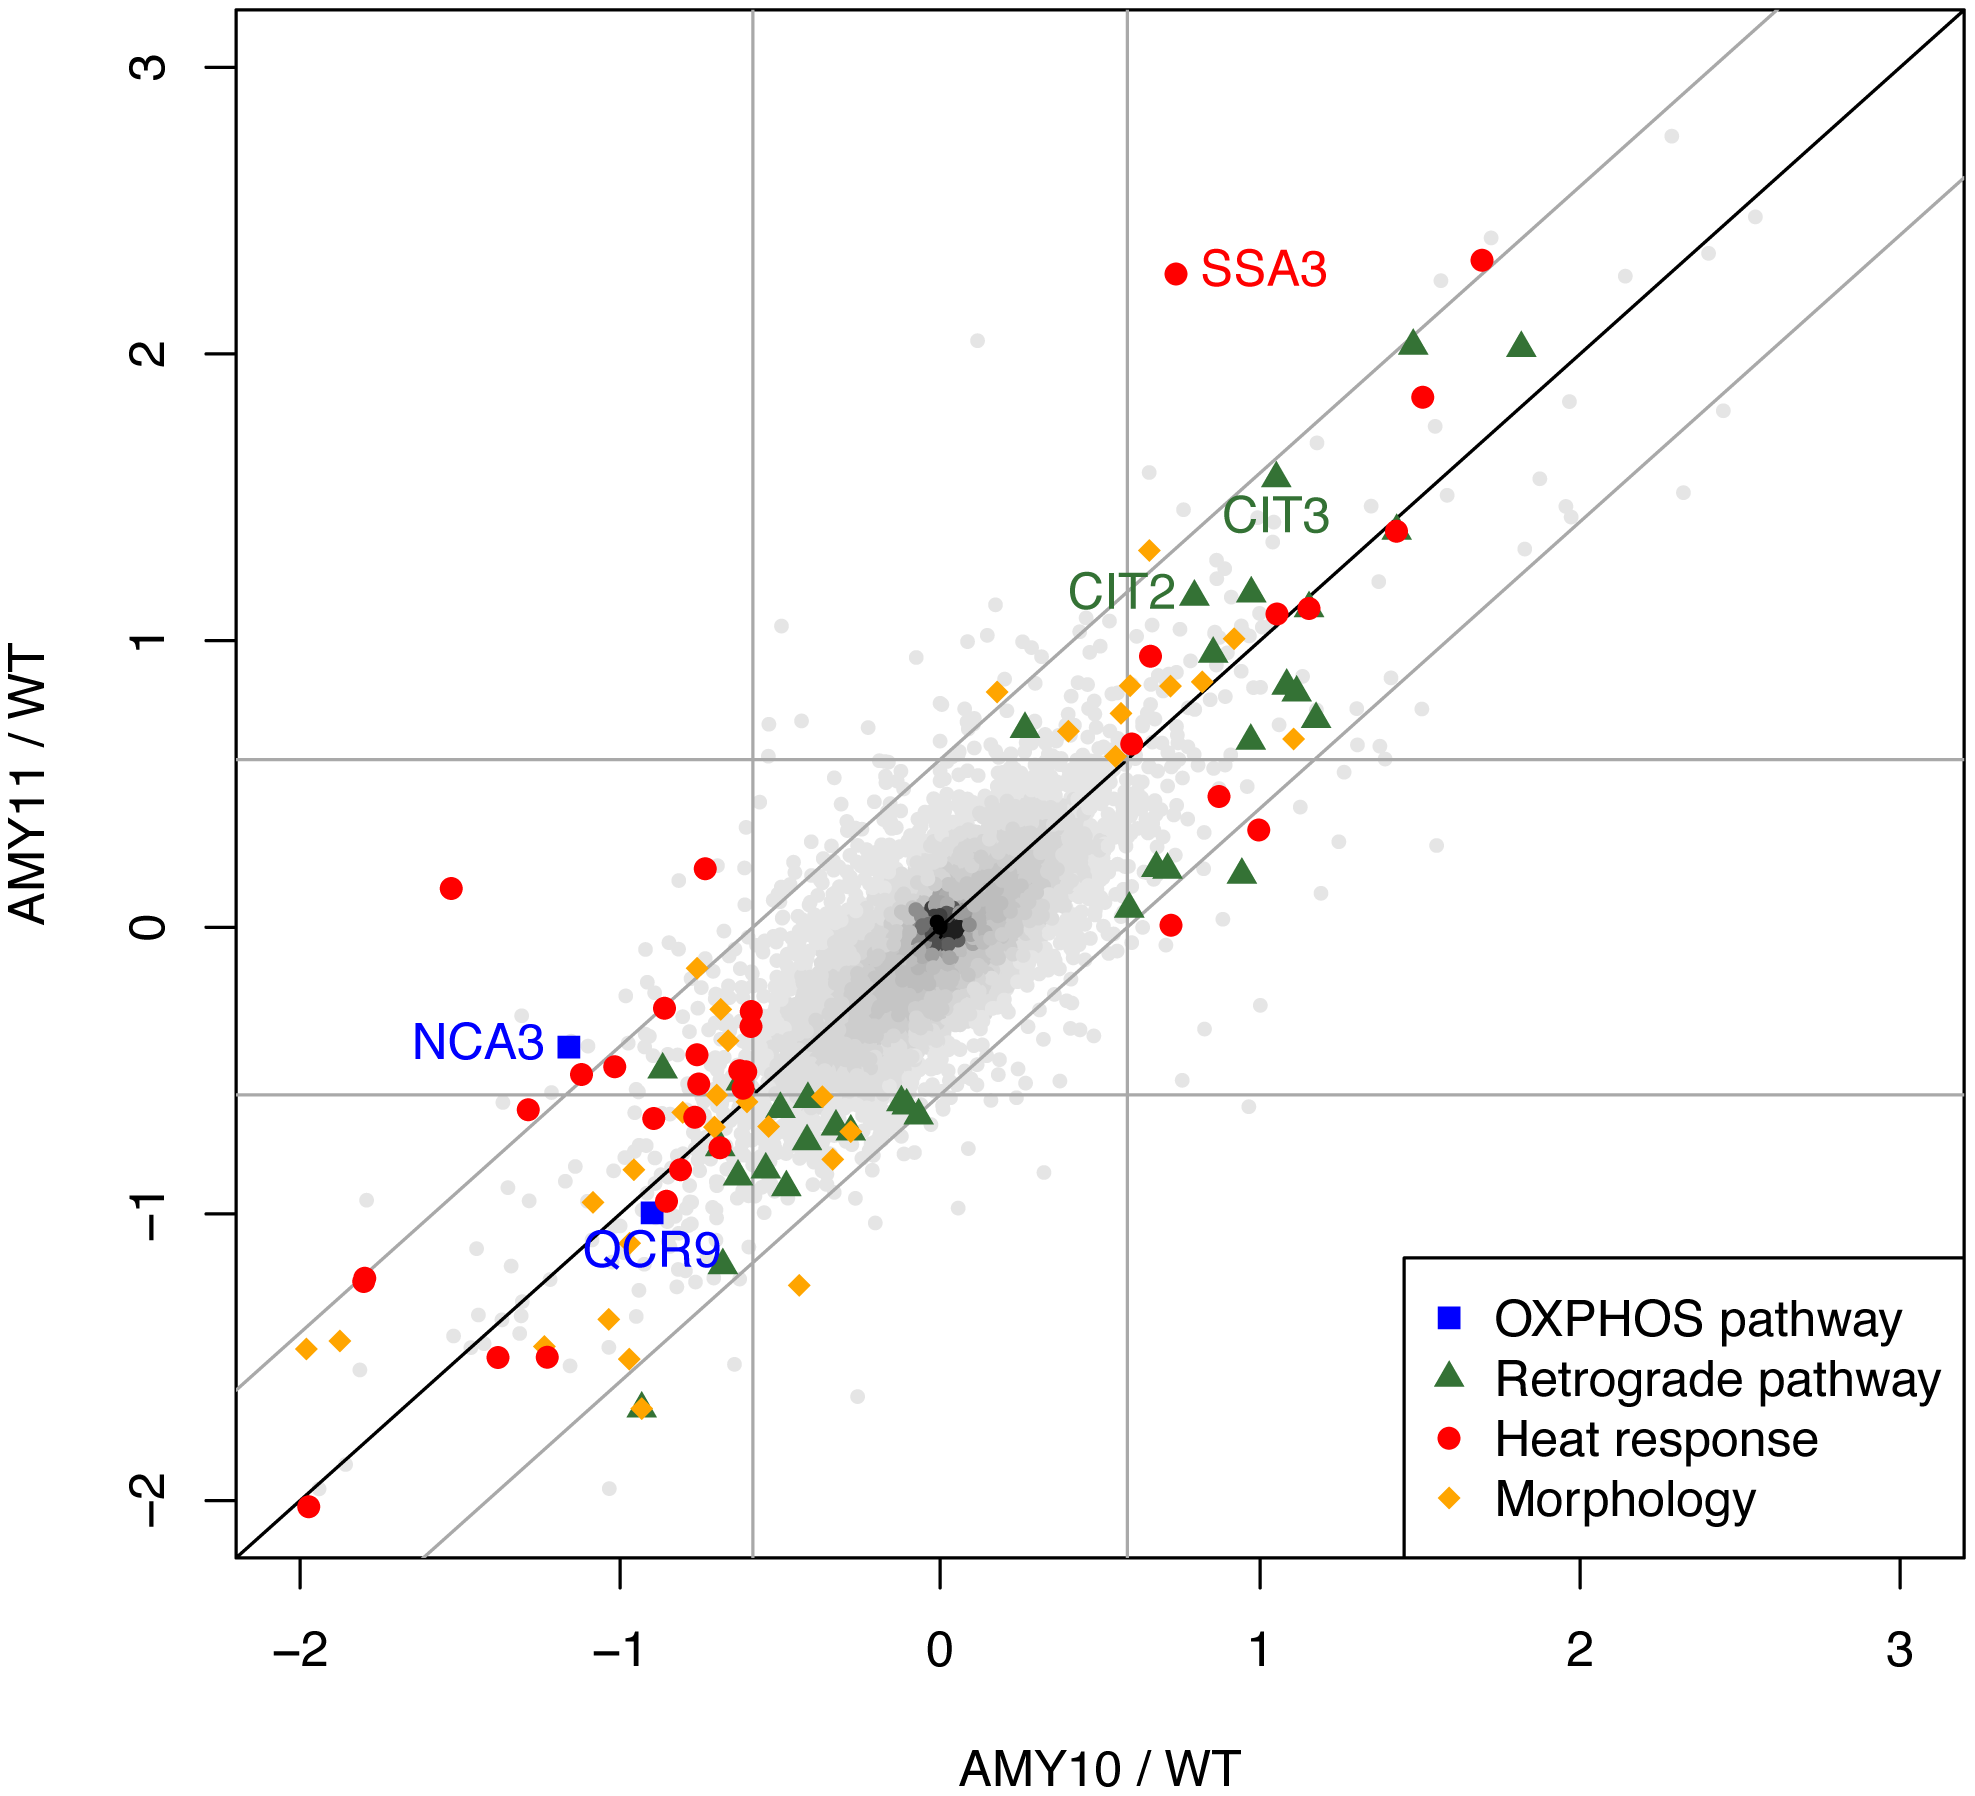 Transcriptome profiles of yeast strains expressing <i>P. anserina Atp9</i> genes indicate functional OXPHOS and regulatory responses to the nuclear relocation of <i>ATP9</i>.